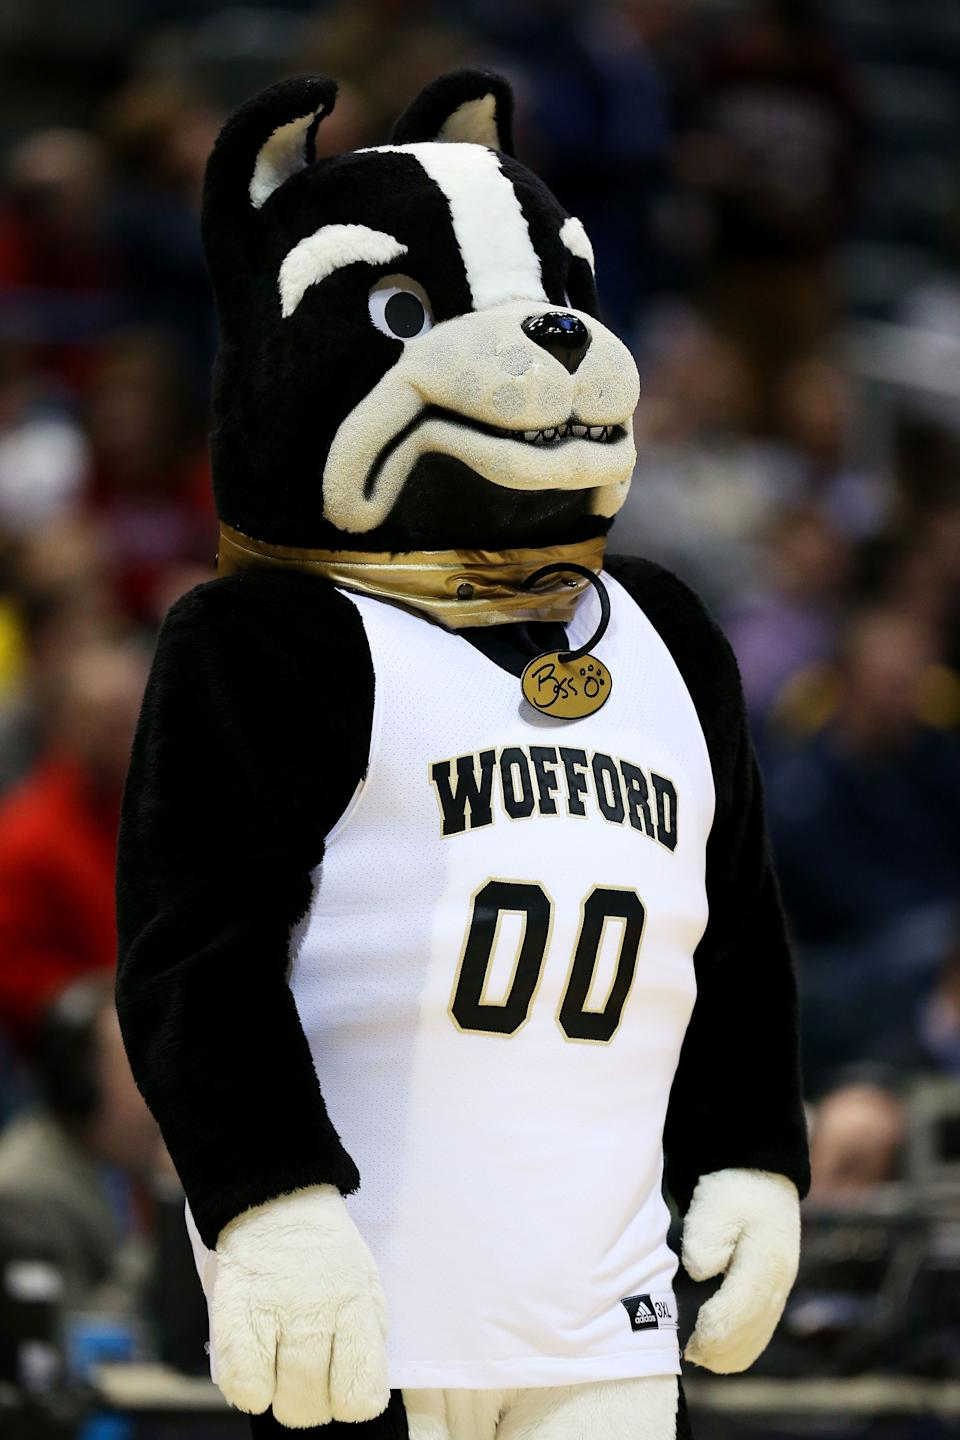 MILWAUKEE, WI - MARCH 20:  The Wofford Terriers mascot looks on against the Michigan Wolverines during the second round of the 2014 NCAA Men's Basketball Tournament at BMO Harris Bradley Center on March 20, 2014 in Milwaukee, Wisconsin.  (Photo by Jonathan Daniel/Getty Images)